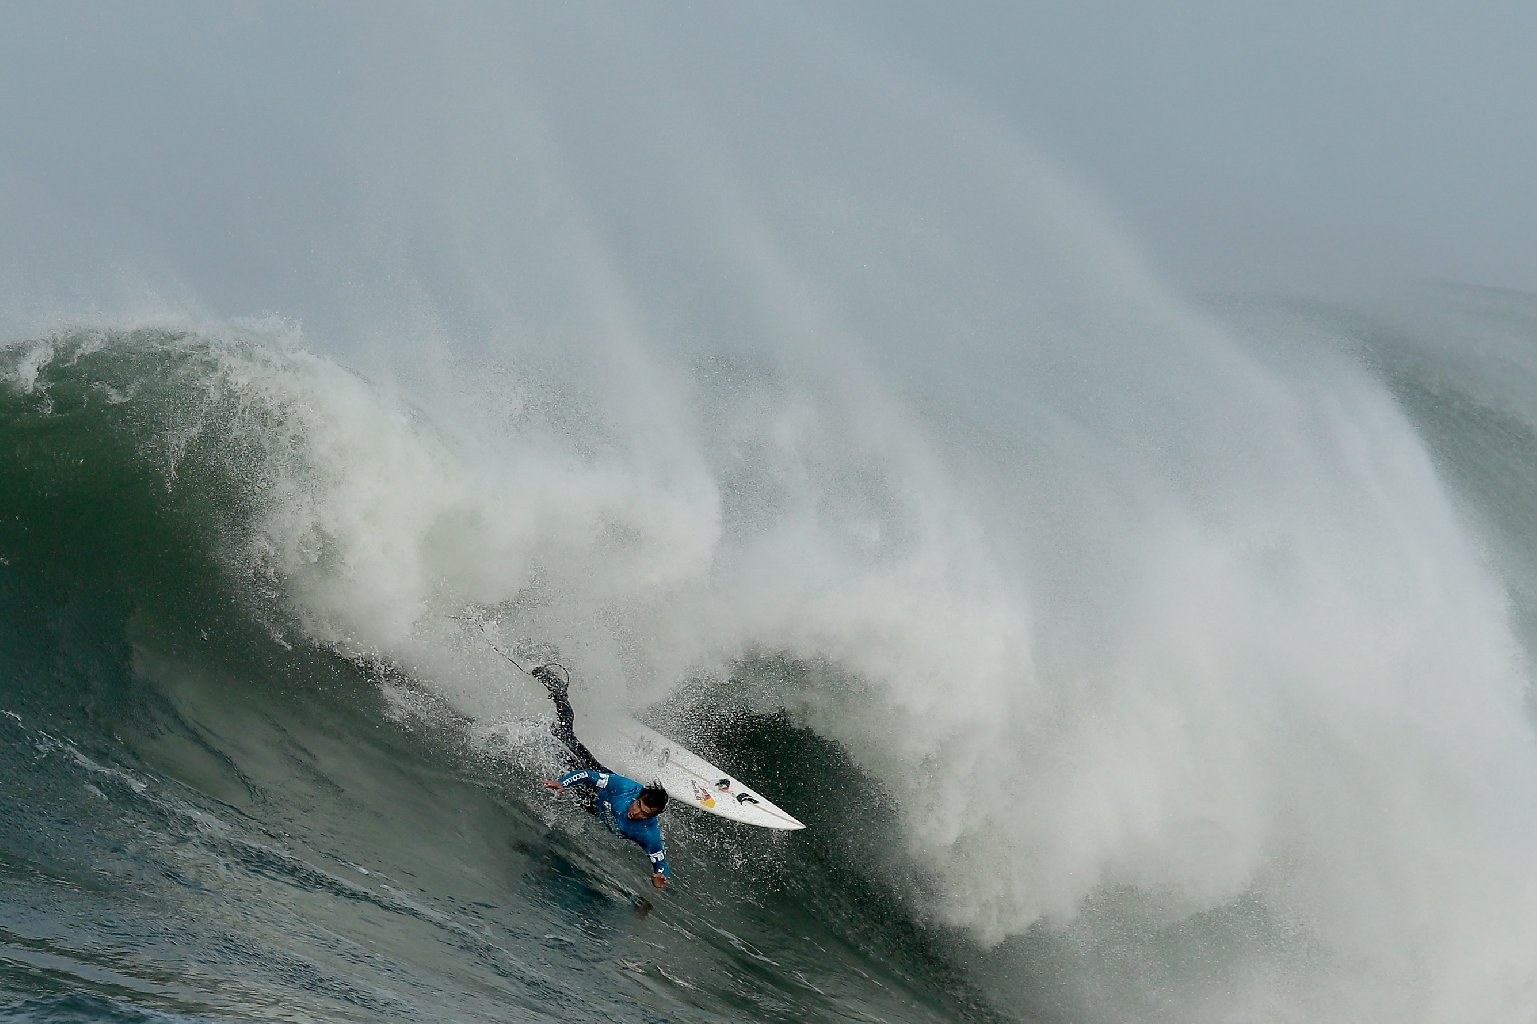 Carlos Burle takes a header  during an early heat in today's Mavericks Invitational in Half Moon Bay, California. (Ezra Shaw/Getty Images)